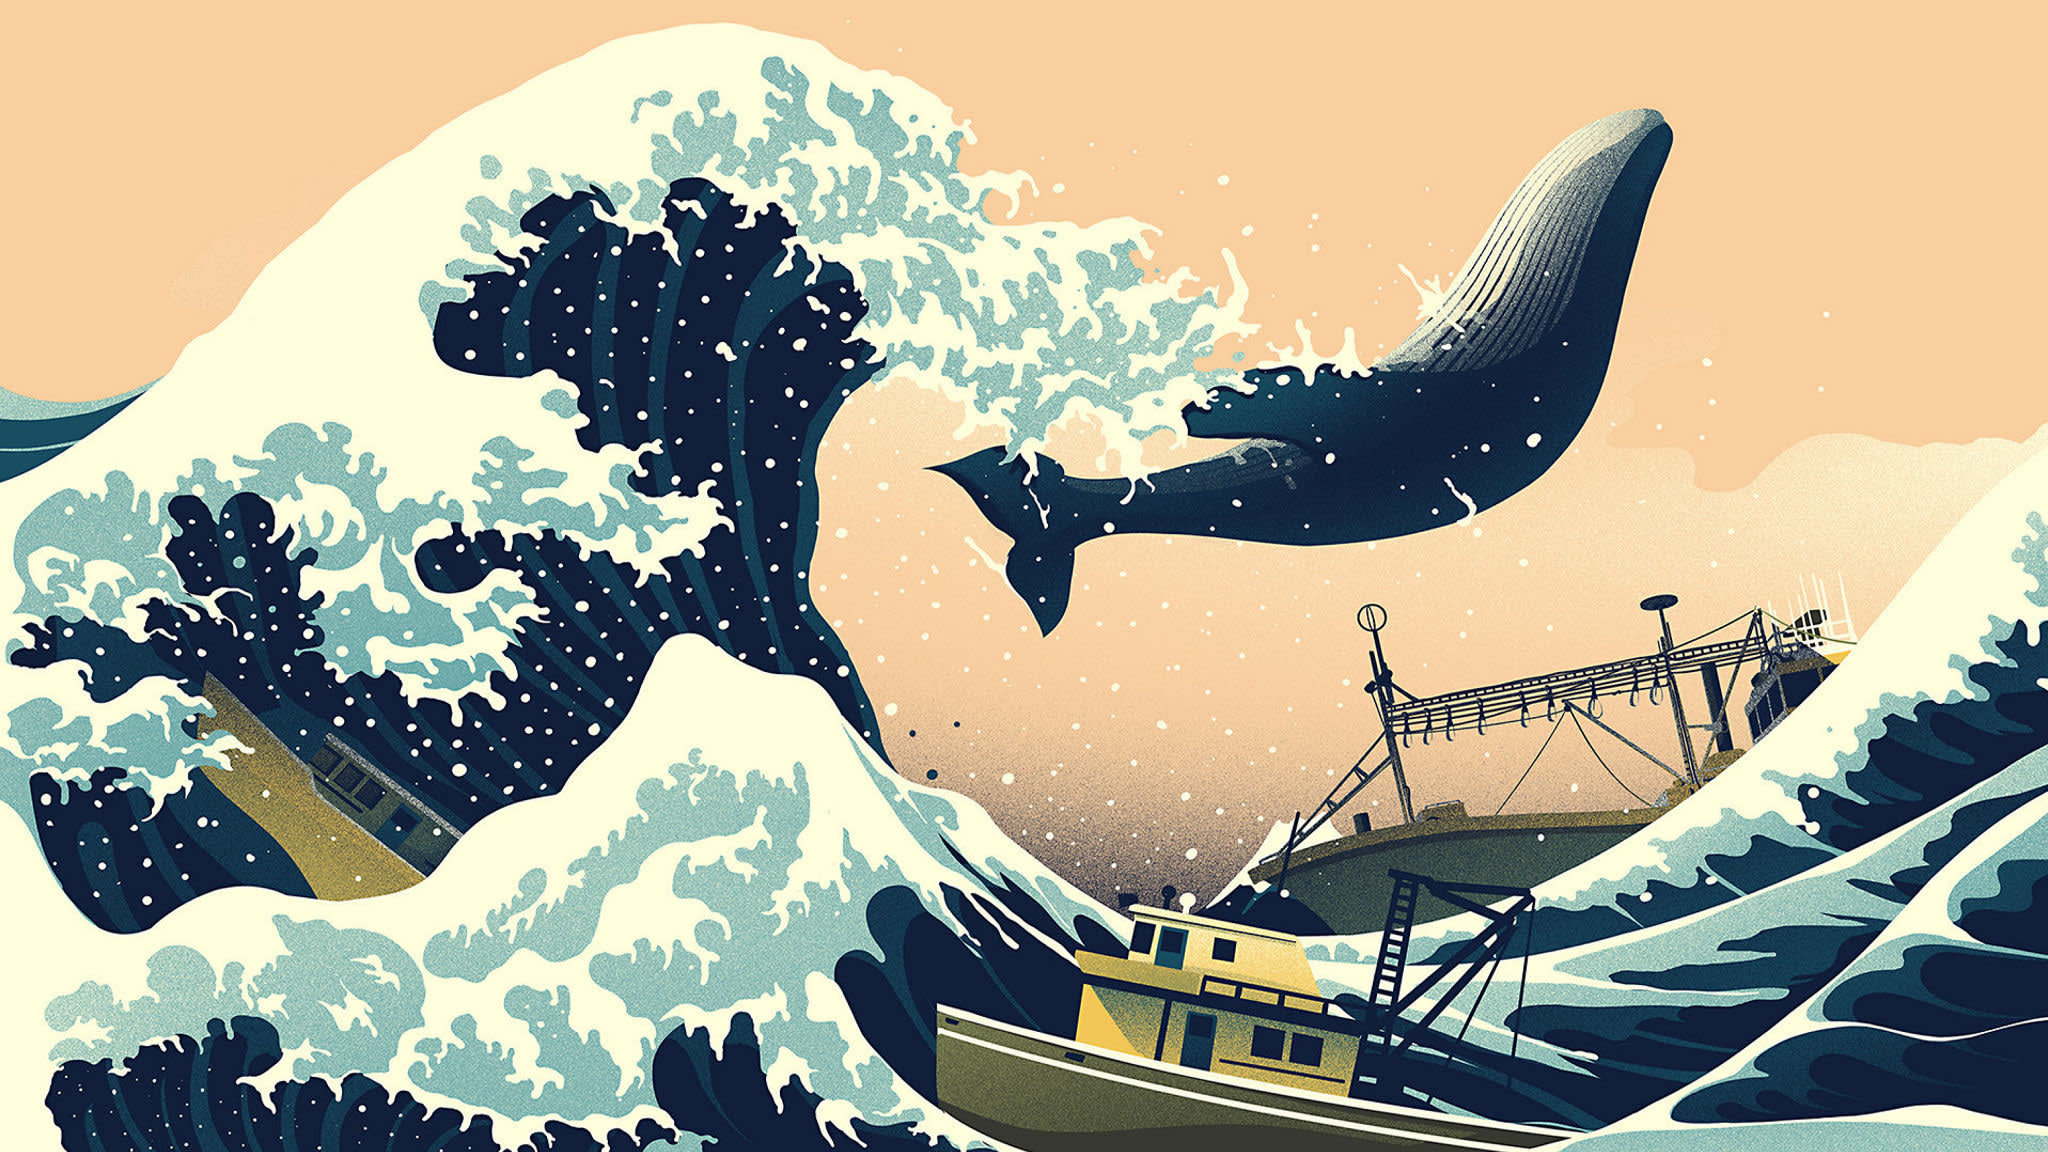 Why Japan risked condemnation to restart commercial whaling | Financial Times